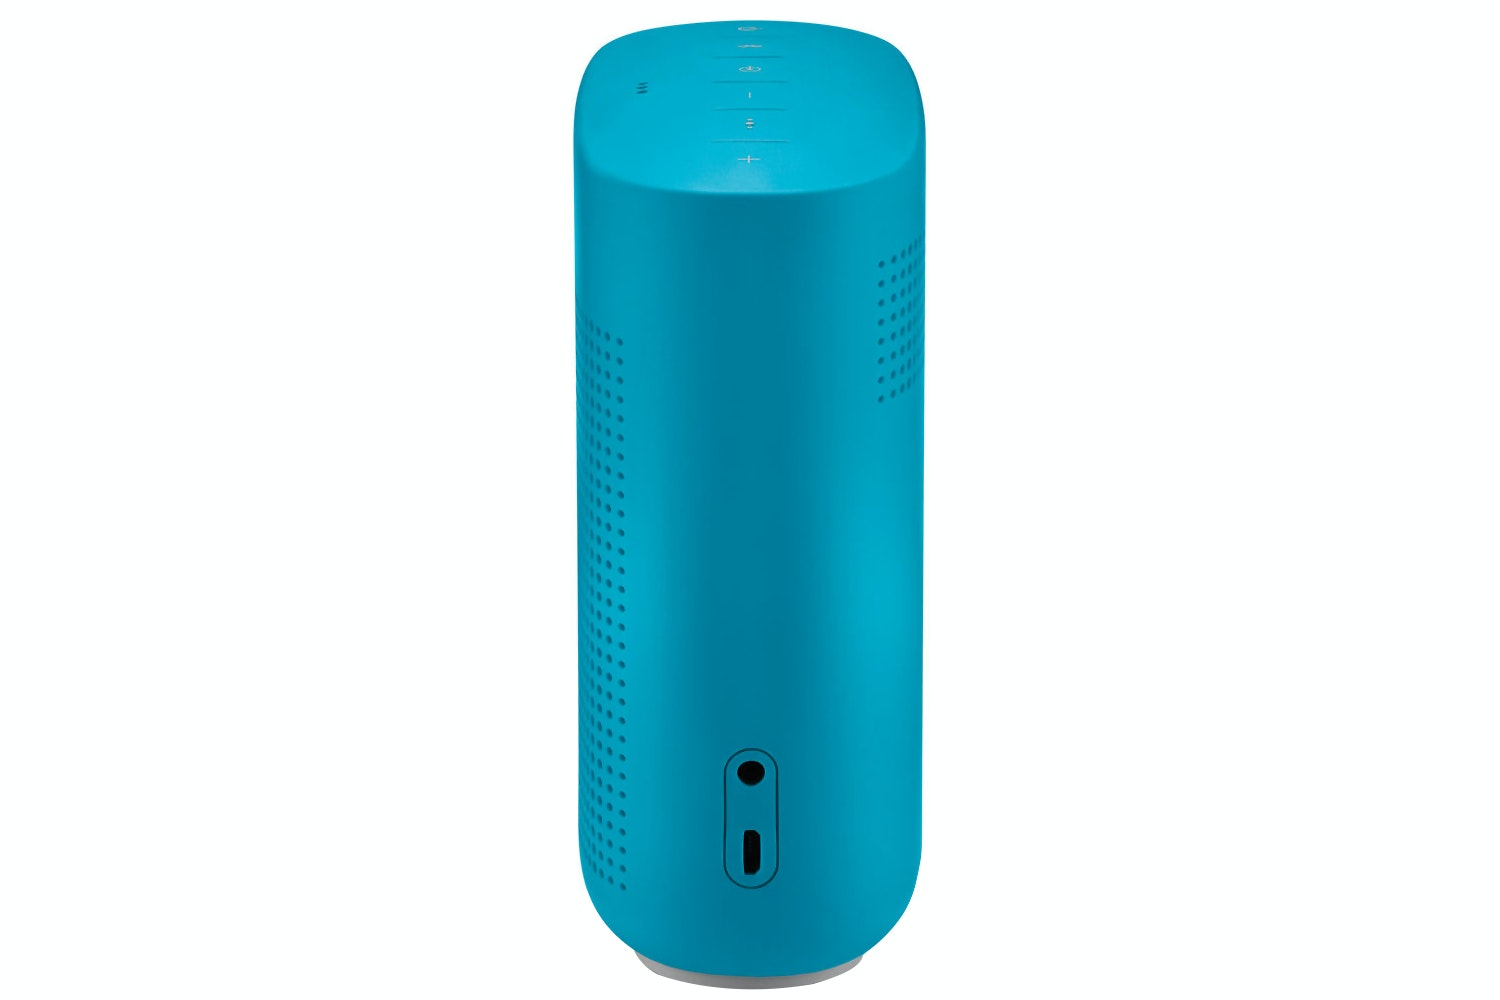 Bose SoundLink Colour Bluetooth Speaker | 752195-0500